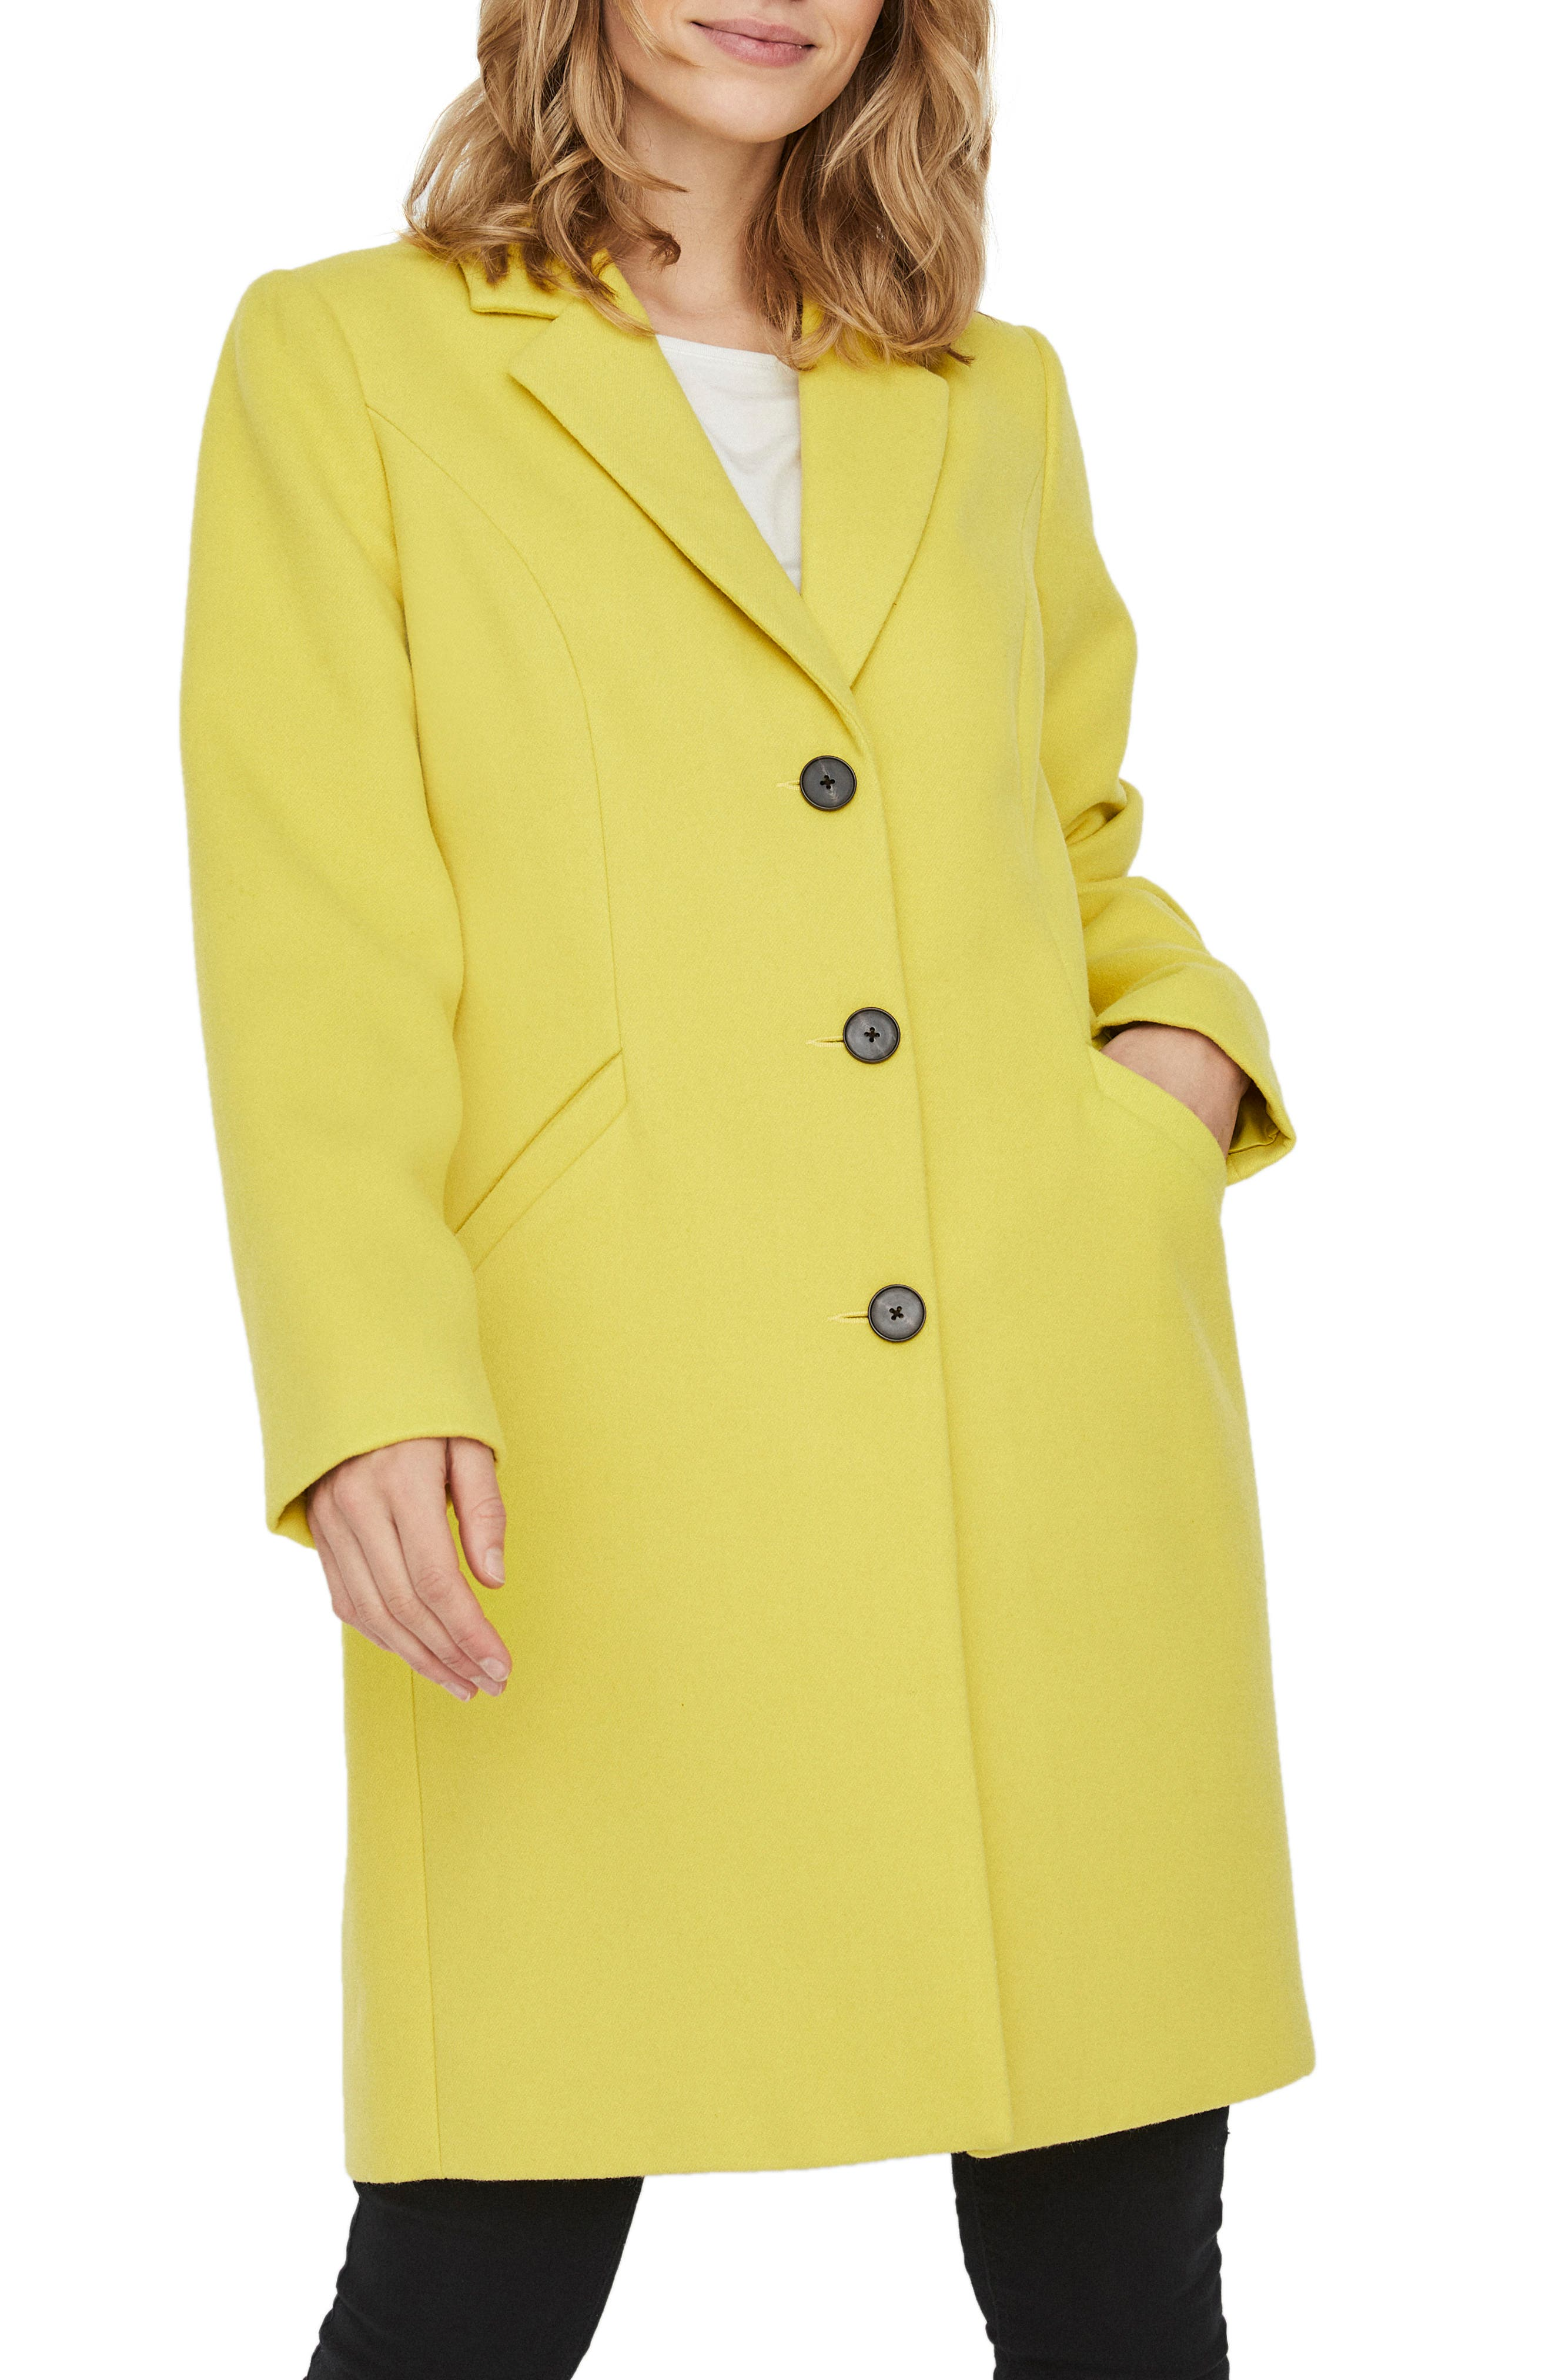 Elevate your outerwear game with this bright, button-front jacket topped with a crisp notched collar. Style Name: Vero Moda Calacindy Coat. Style Number: 6076310. Available in stores.